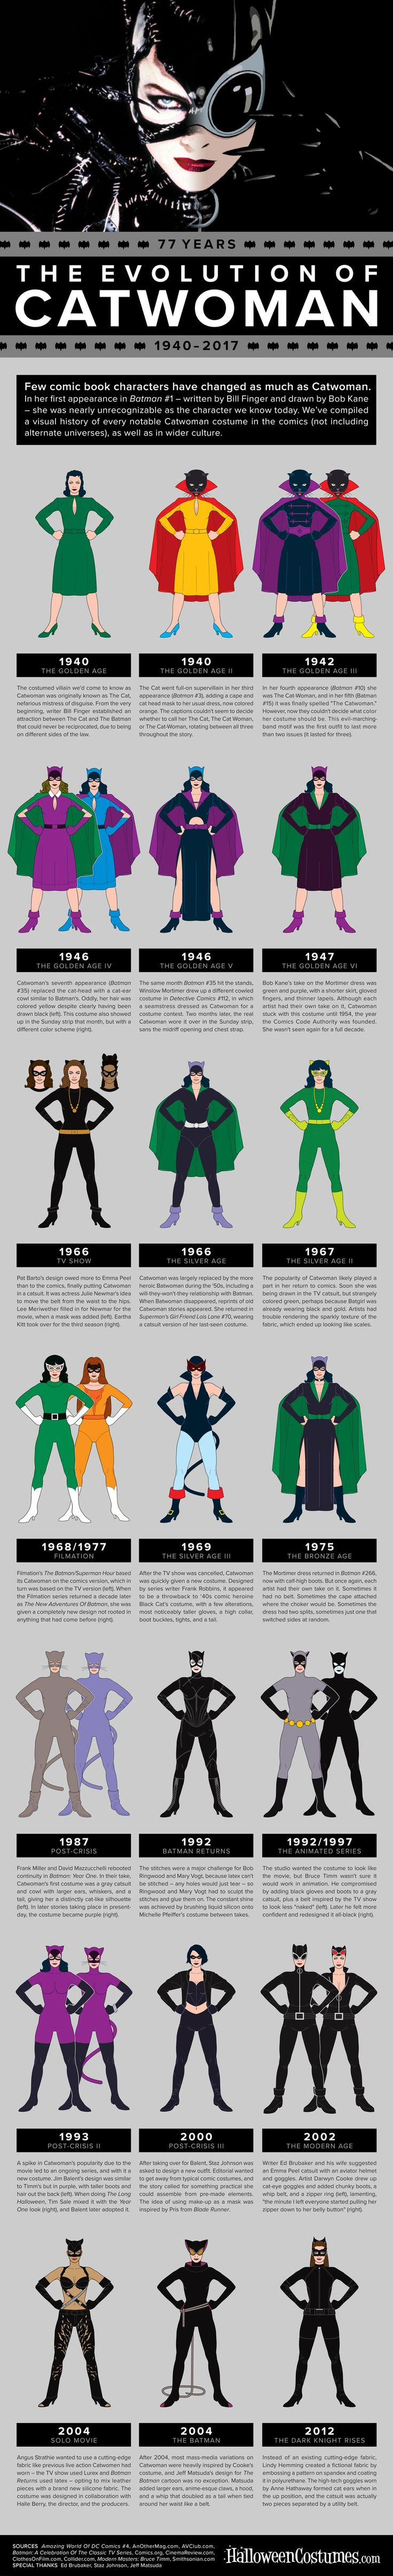 Infographic Showing Off the 77-Year Evolution of Catwoman - 8 Bit Nerds shares the best funny pics, video games, sci-fi, fantasy, comic, and cosplay pics on the internet!